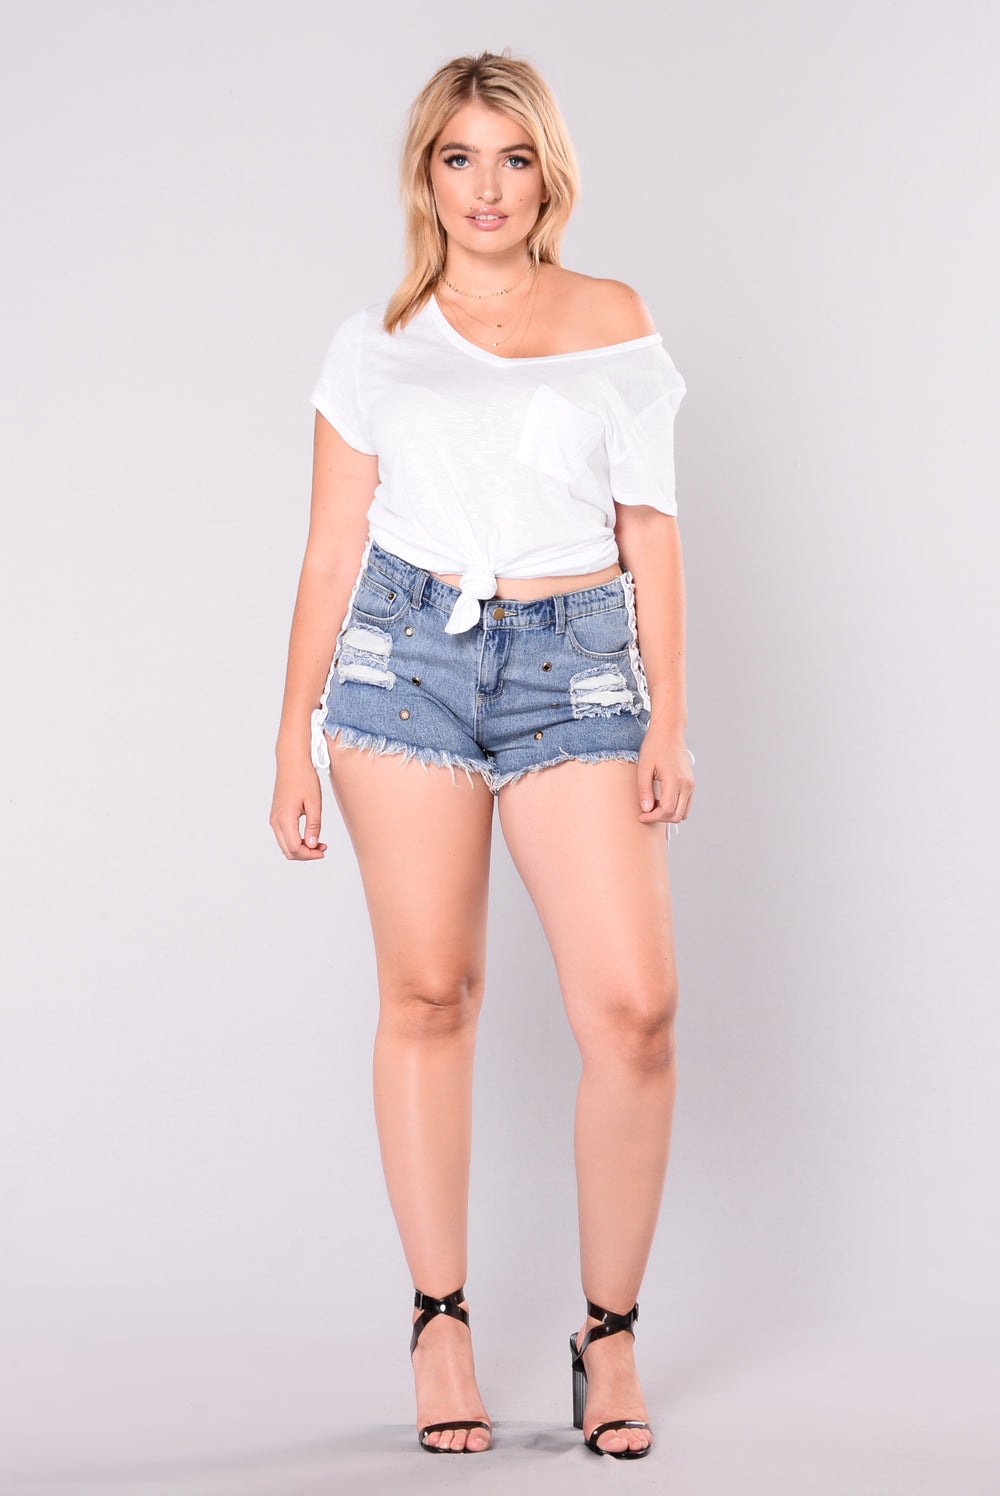 Baesic Top - White